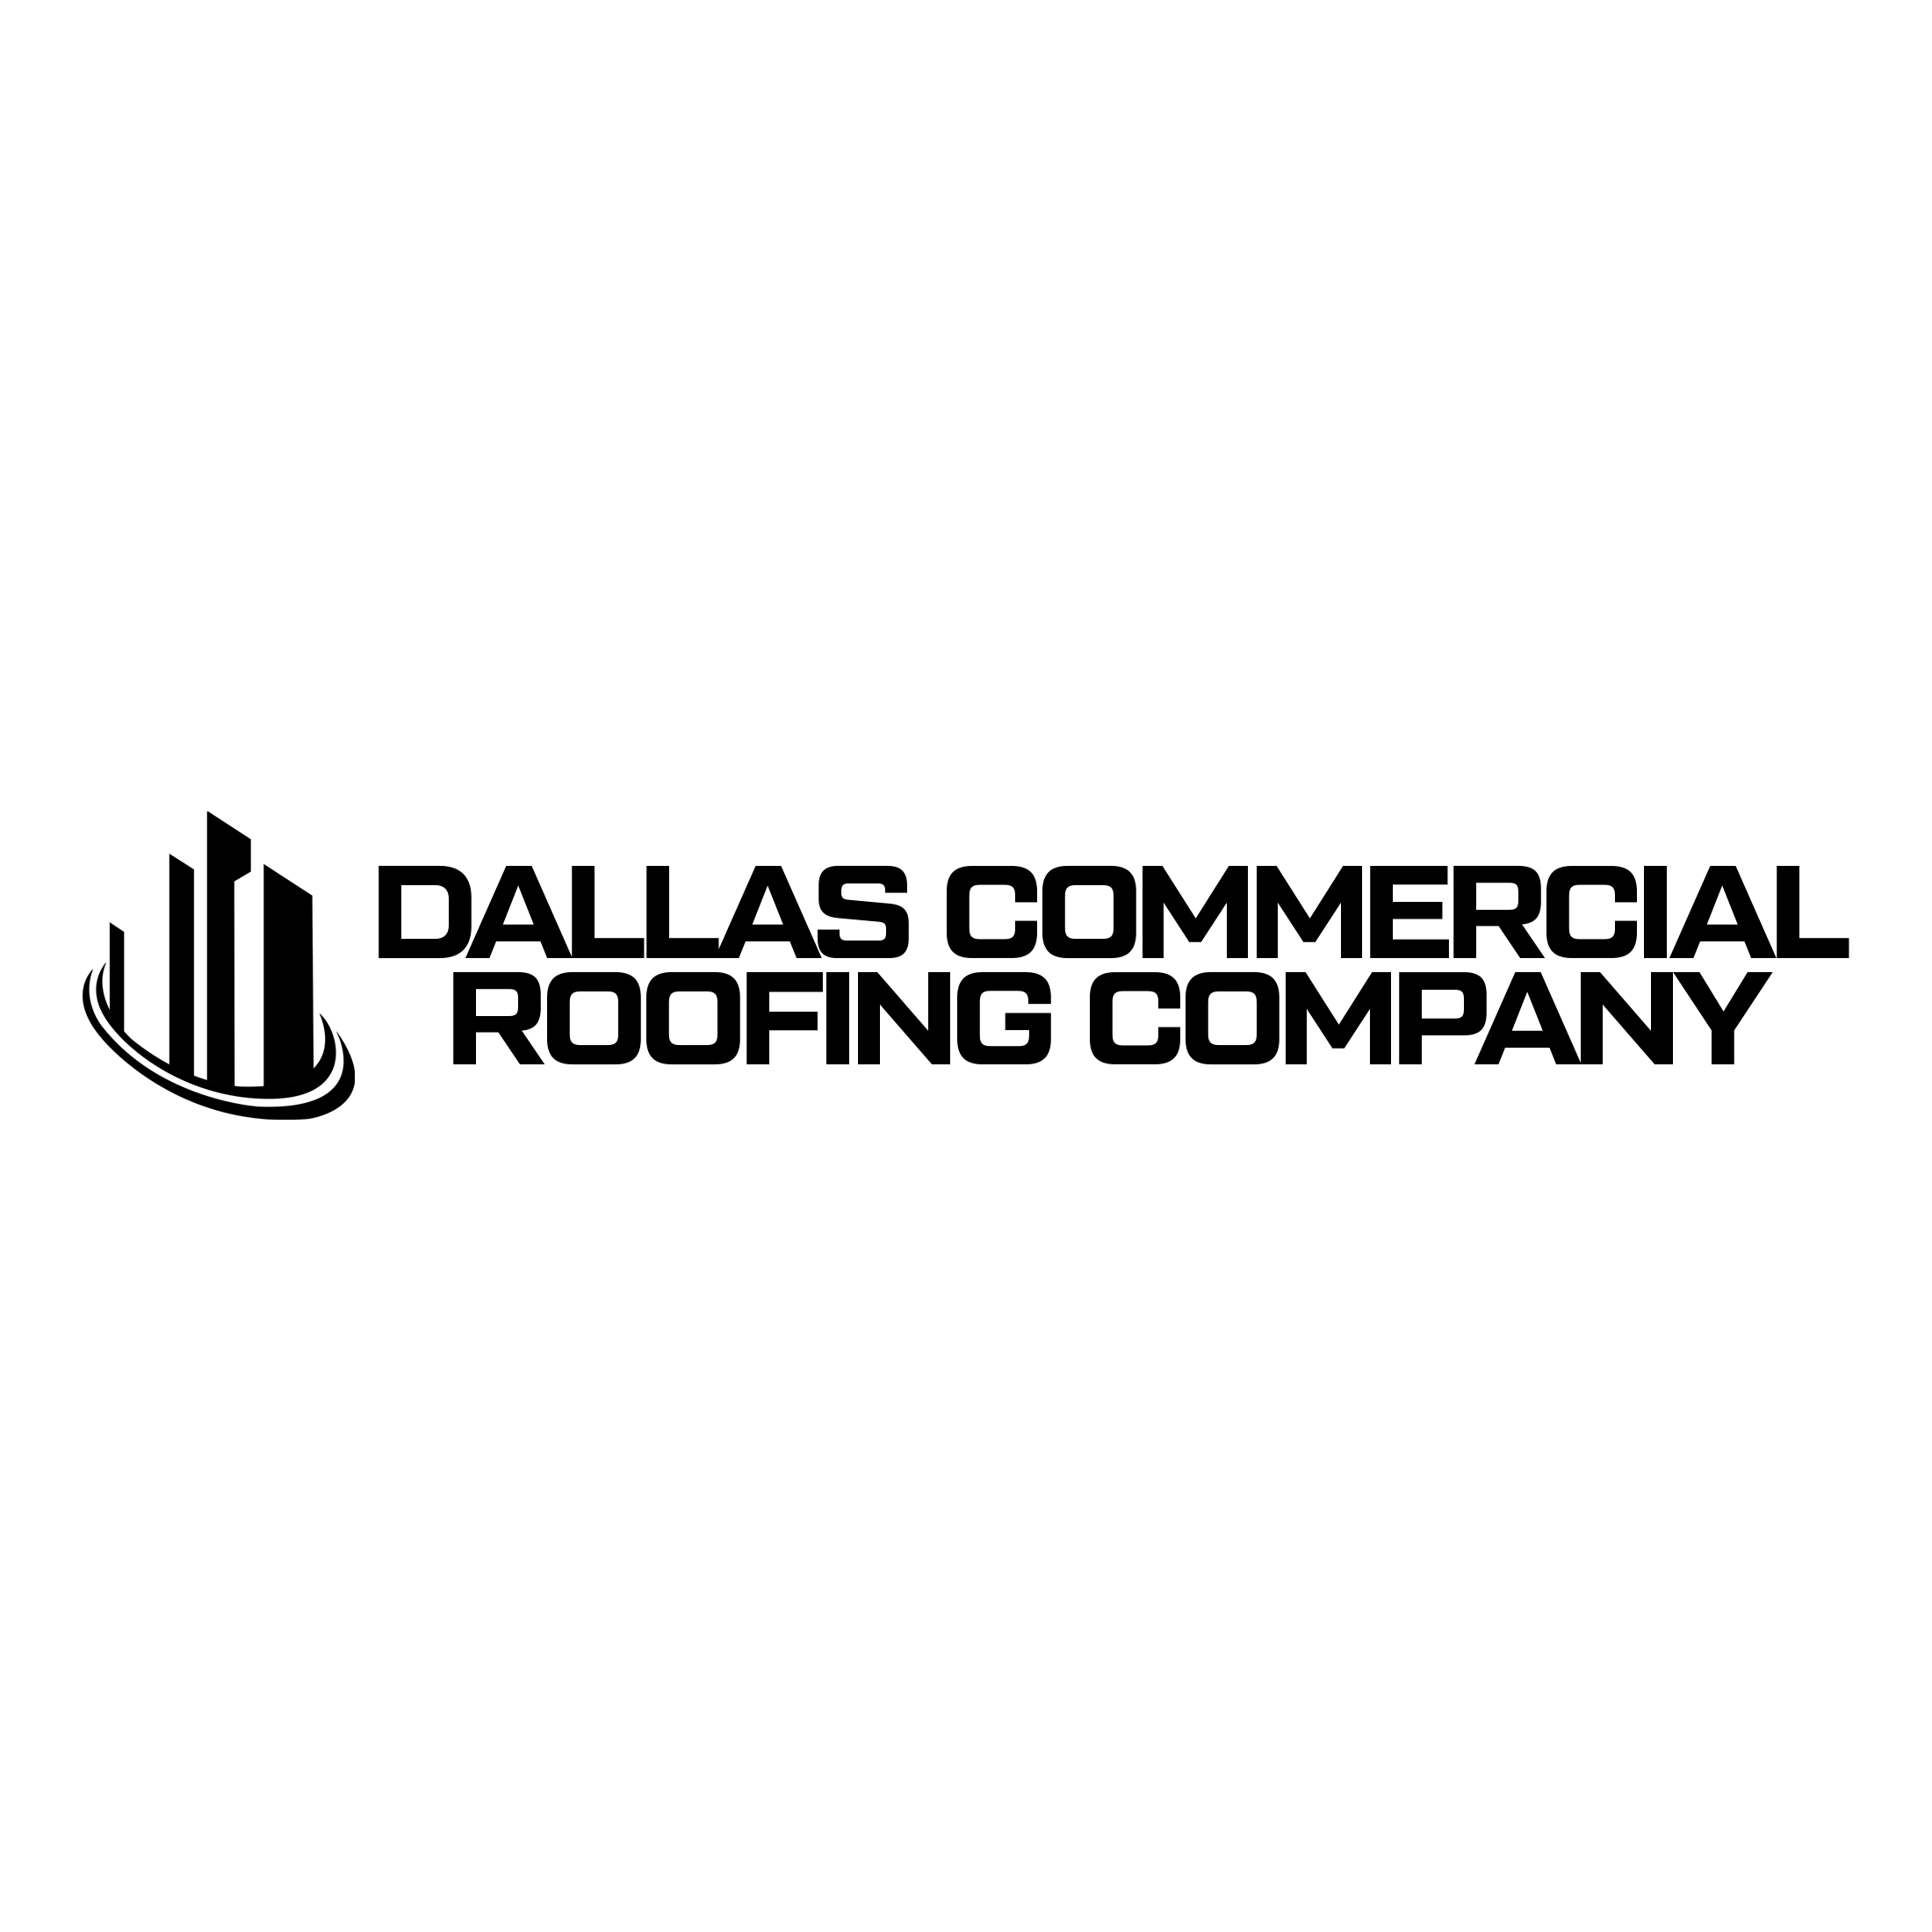 Dallas Commercial Roofing Company has Received a 5-Star Rating for Quality and Reliable Commercial Roofing Services 1